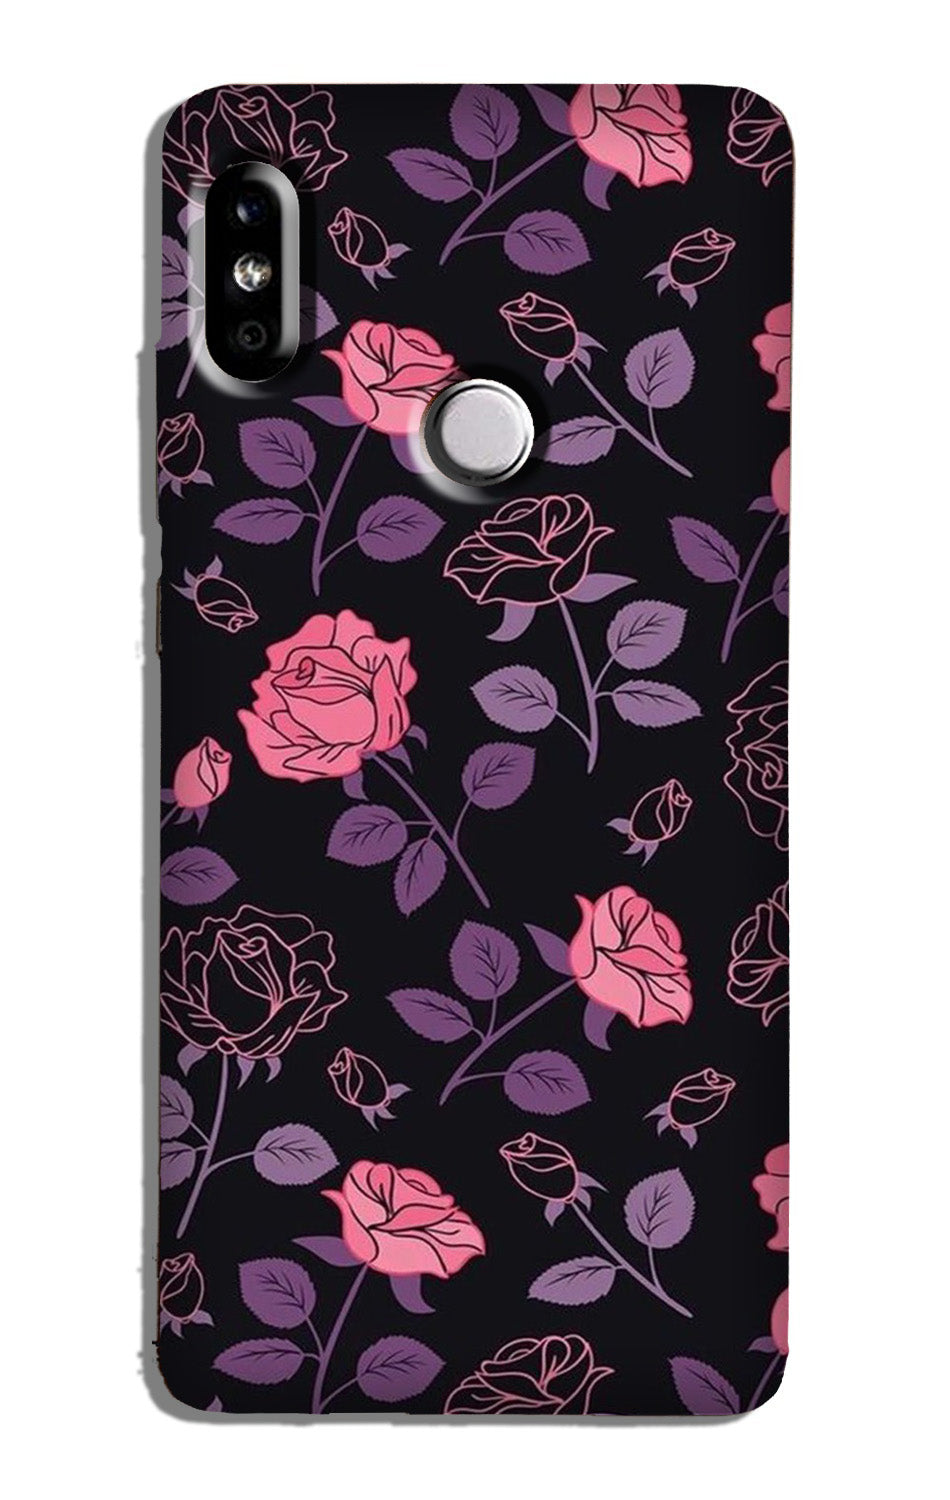 Rose Pattern Case for Redmi Note 6 Pro